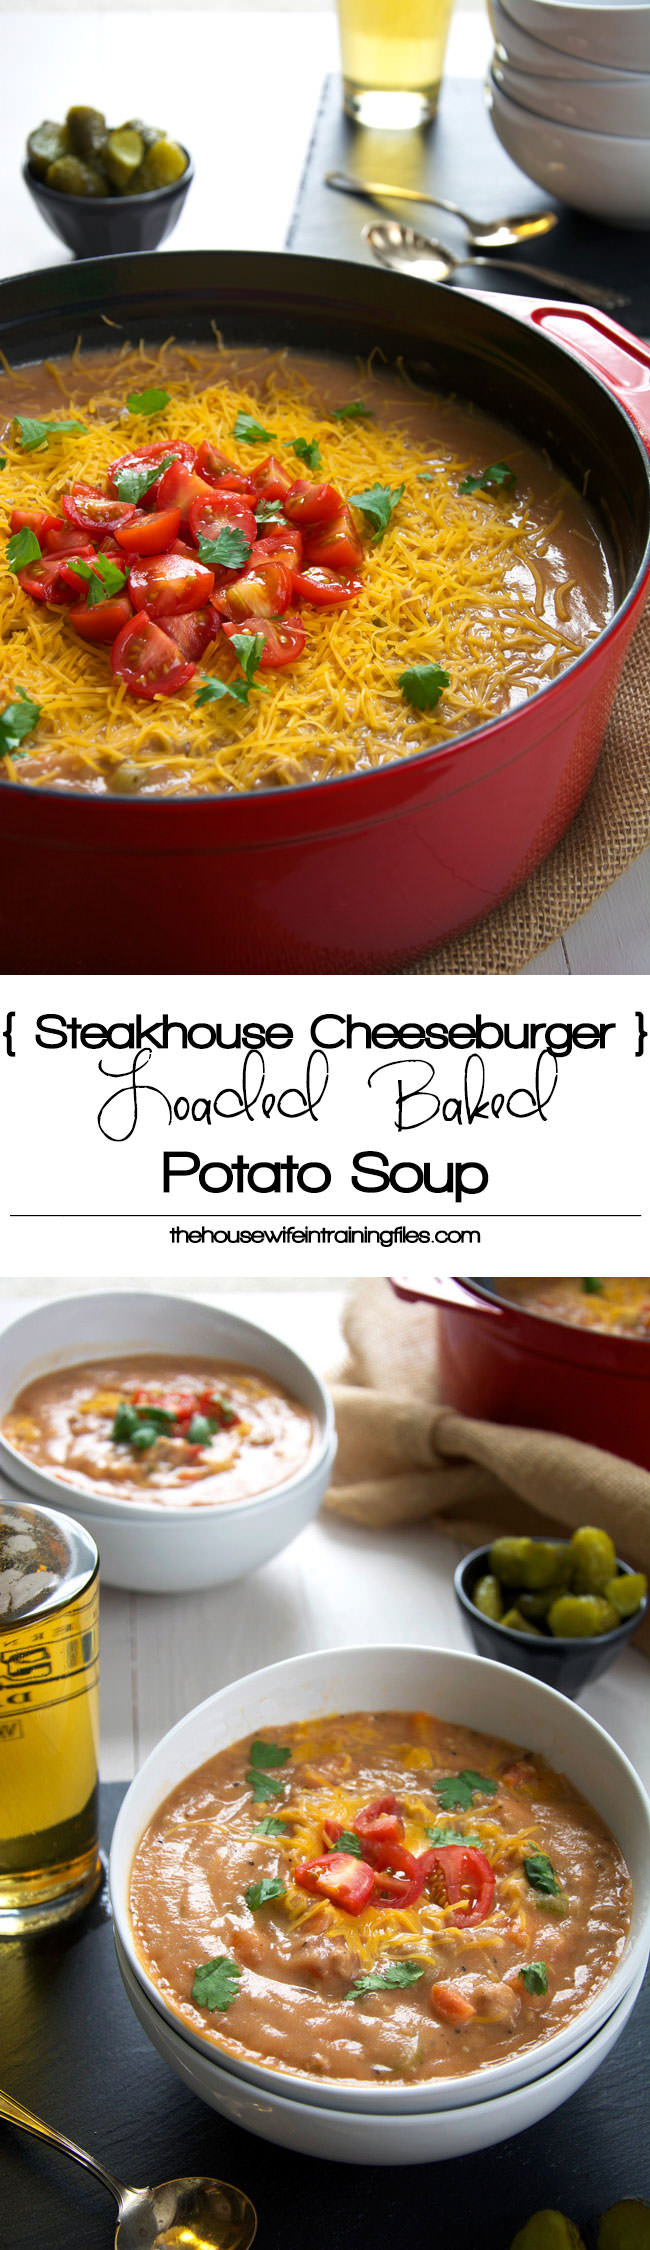 All the flavors of a juicy burger and loaded baked potato soup in one bite in this ultra creamy, delicious and lighter recipe! #glutenfree #potatosoup #cauliflower #skinny